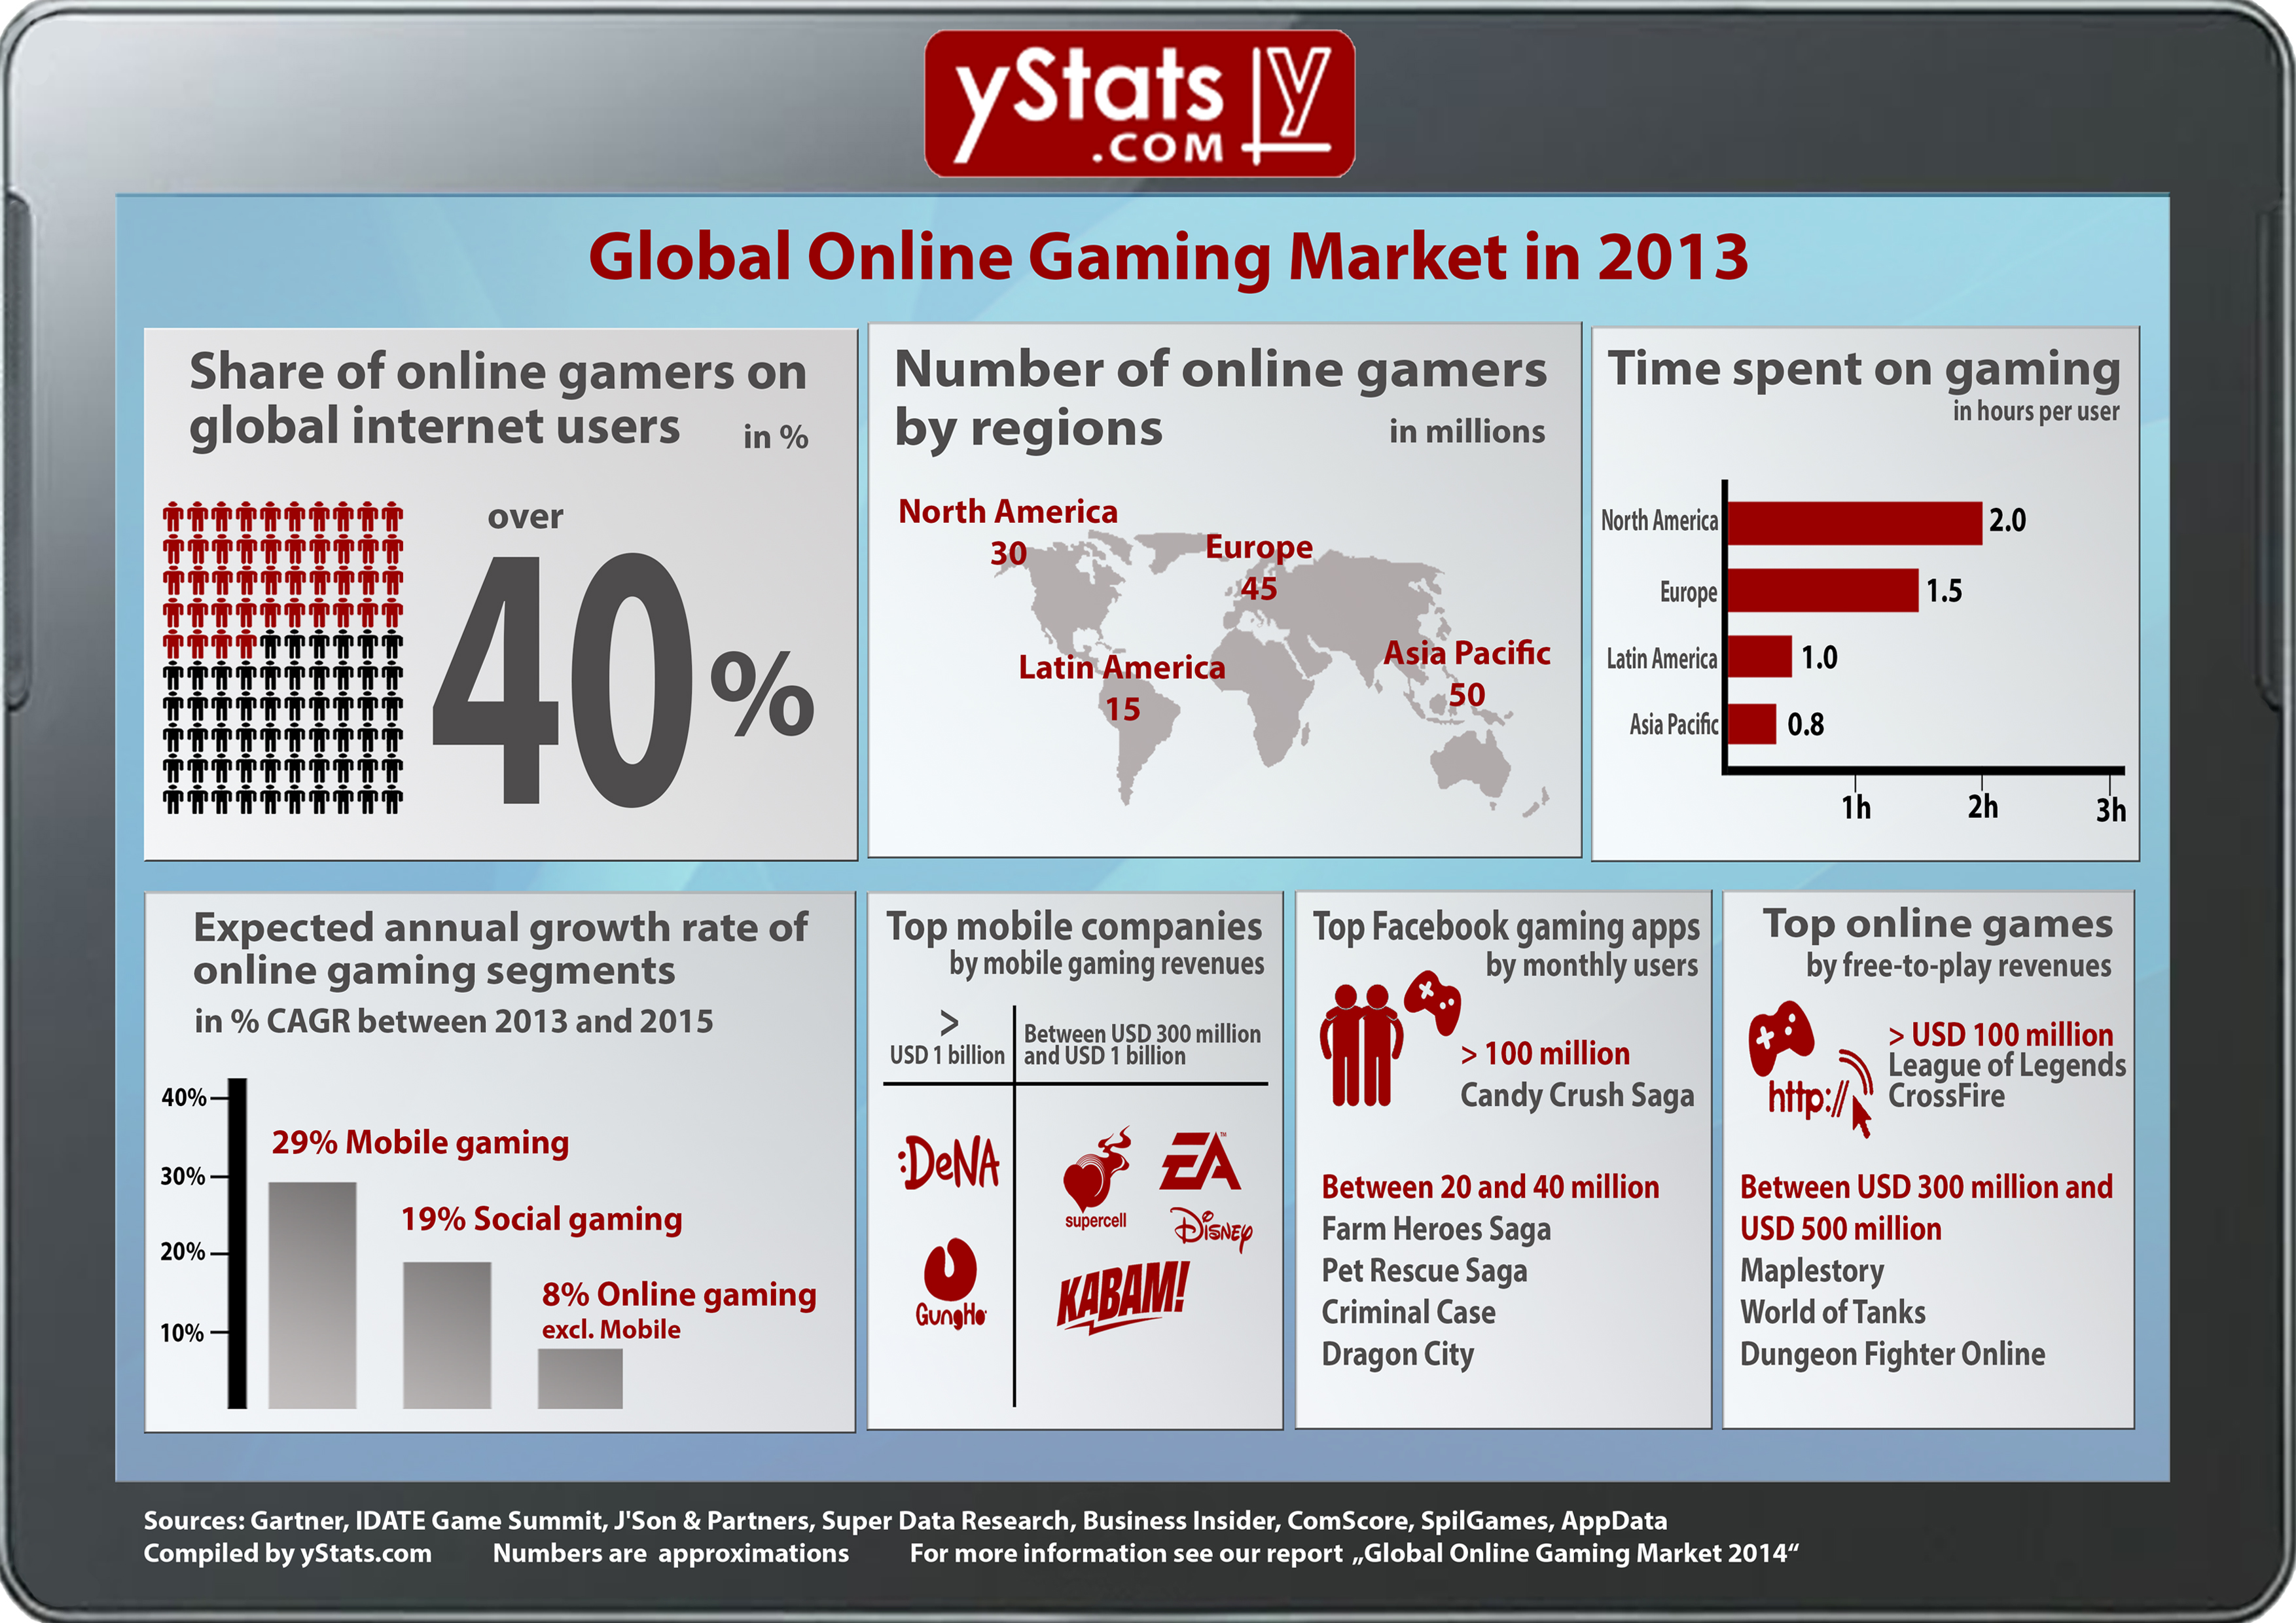 Social & Mobile Games Spur Growth of Online Gaming Market